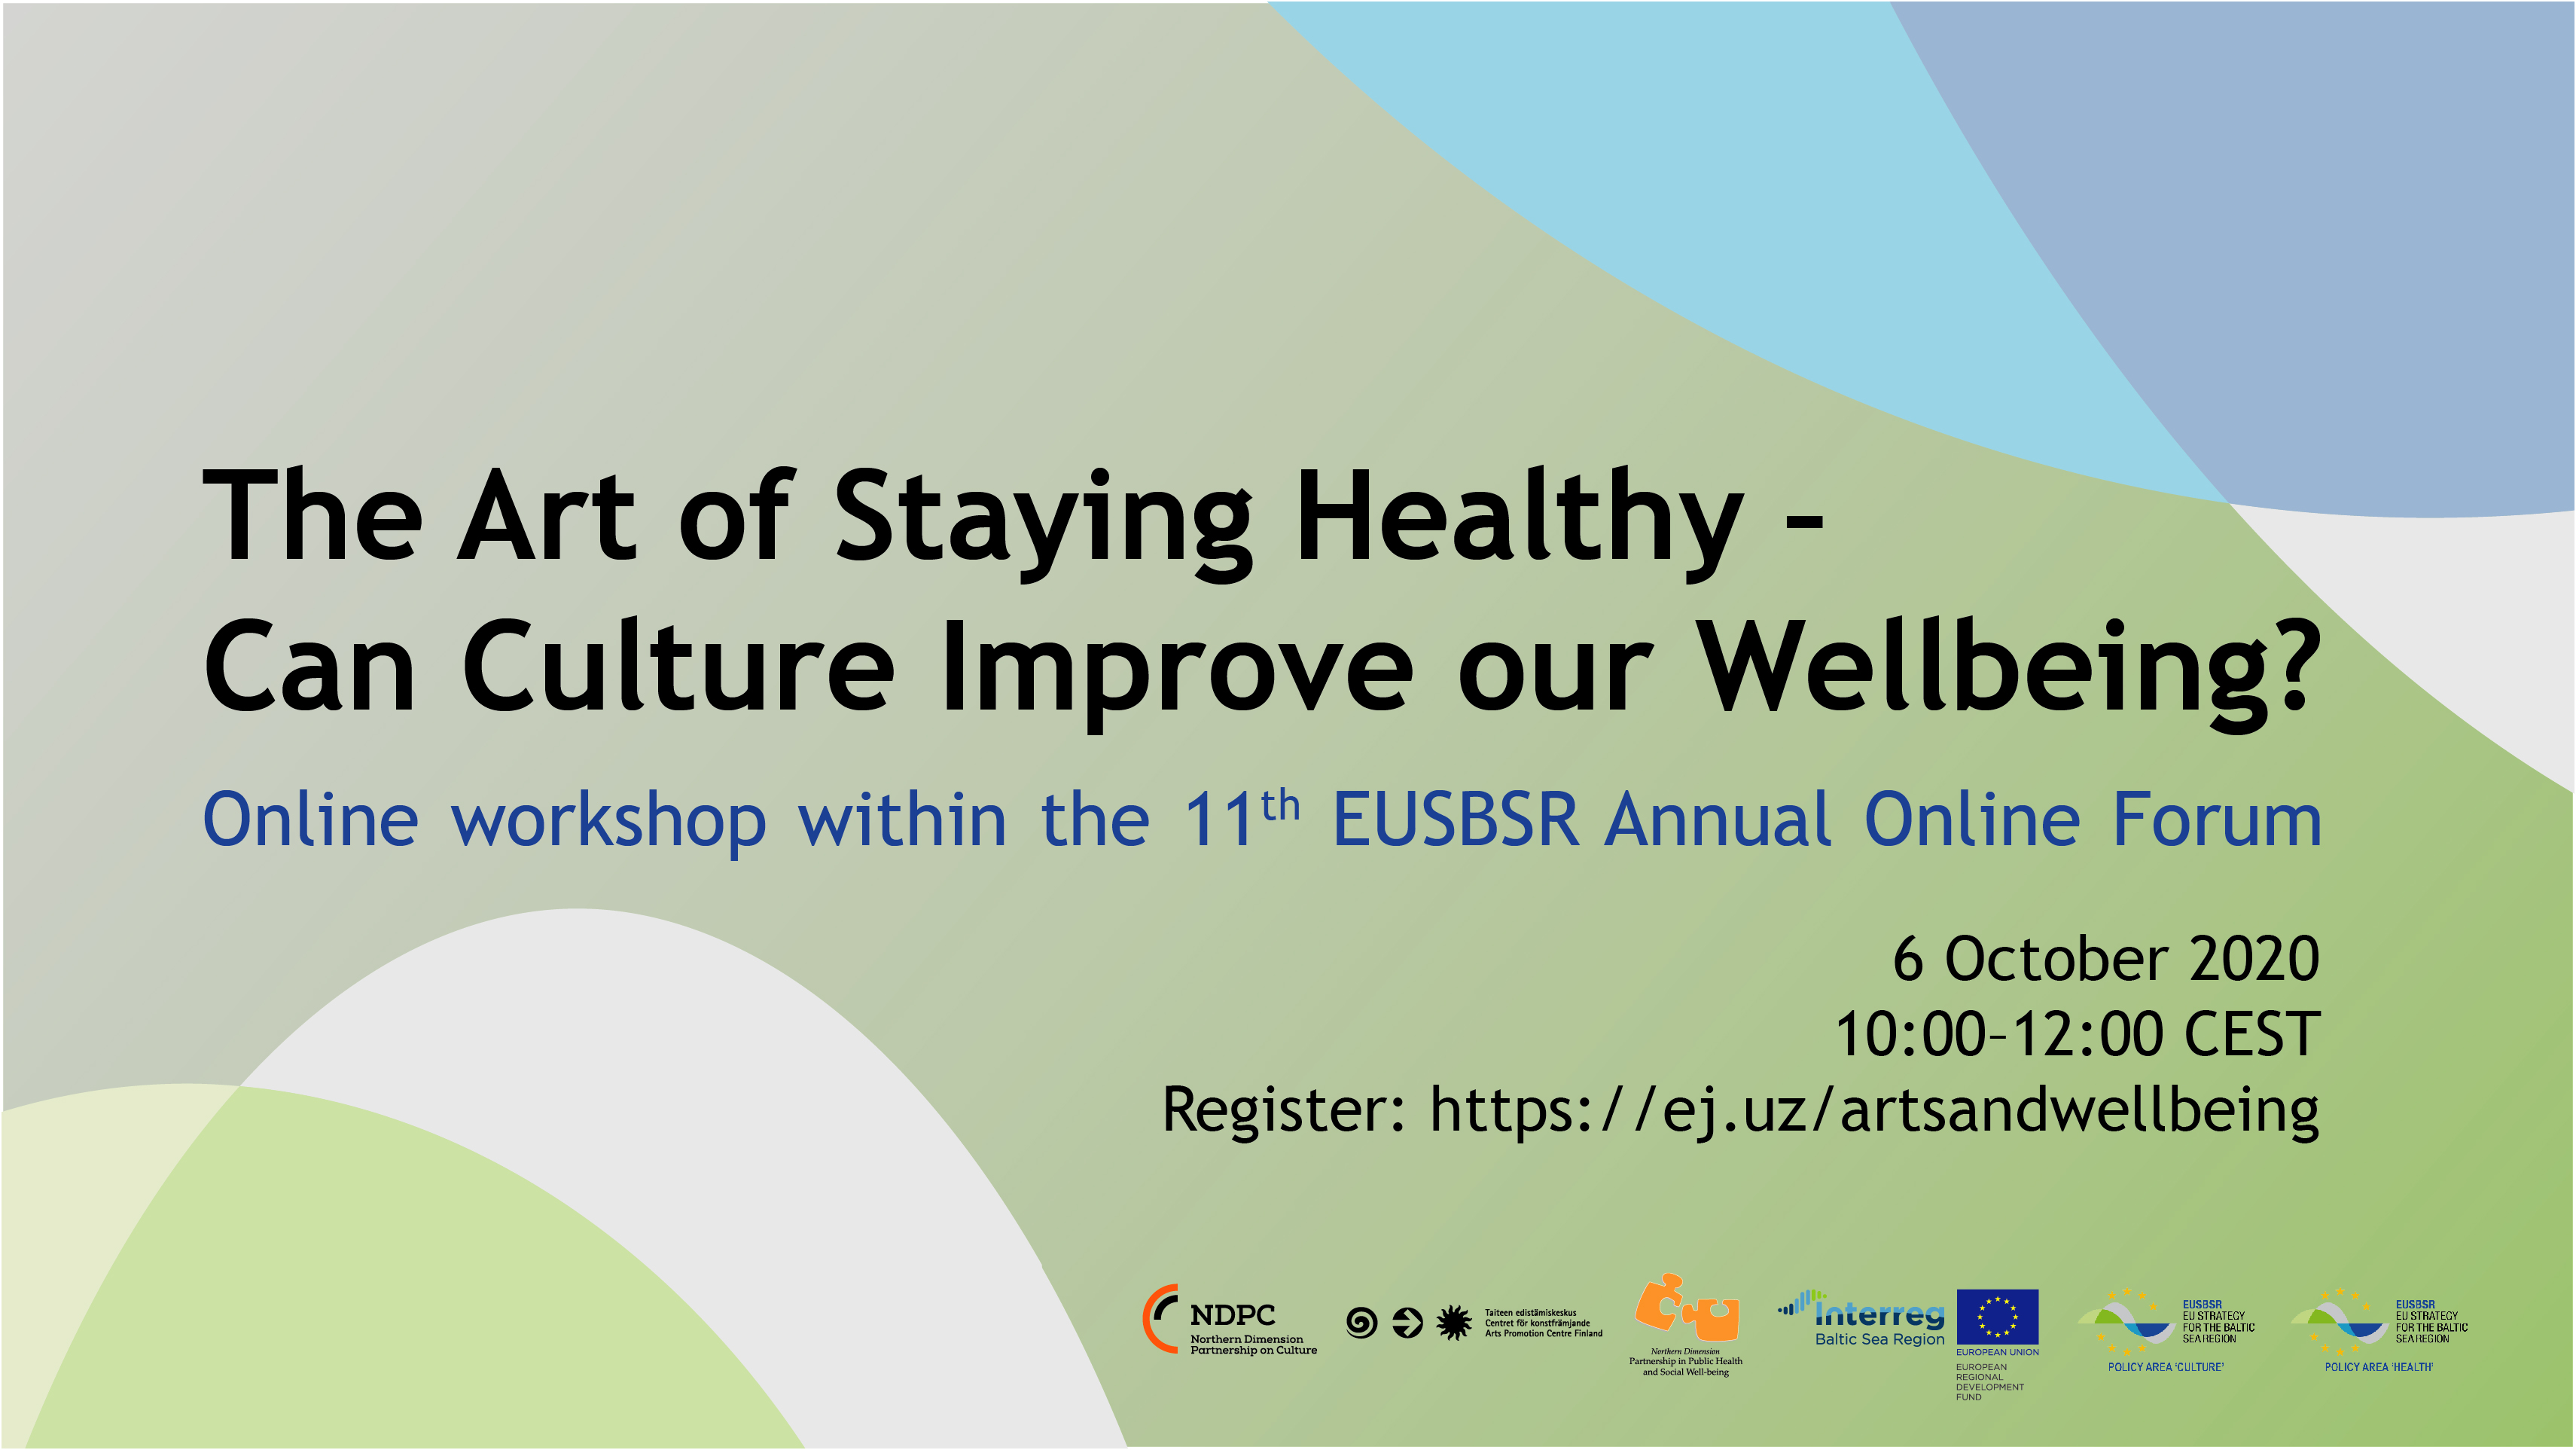 Text-Banner art of staying healthy, online workshop in 6th October